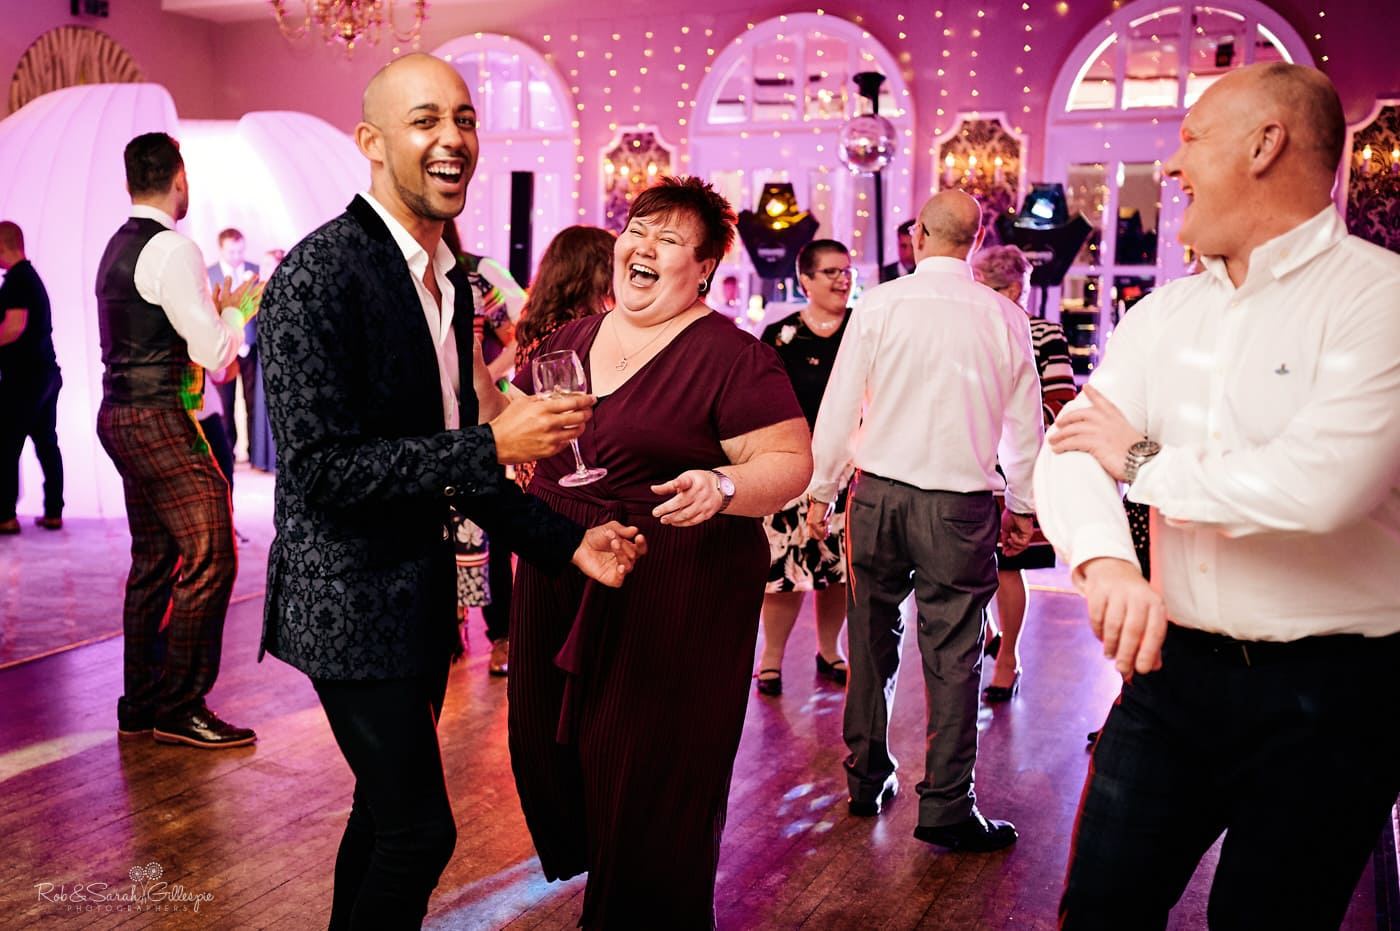 Wedding guests dance at reception party